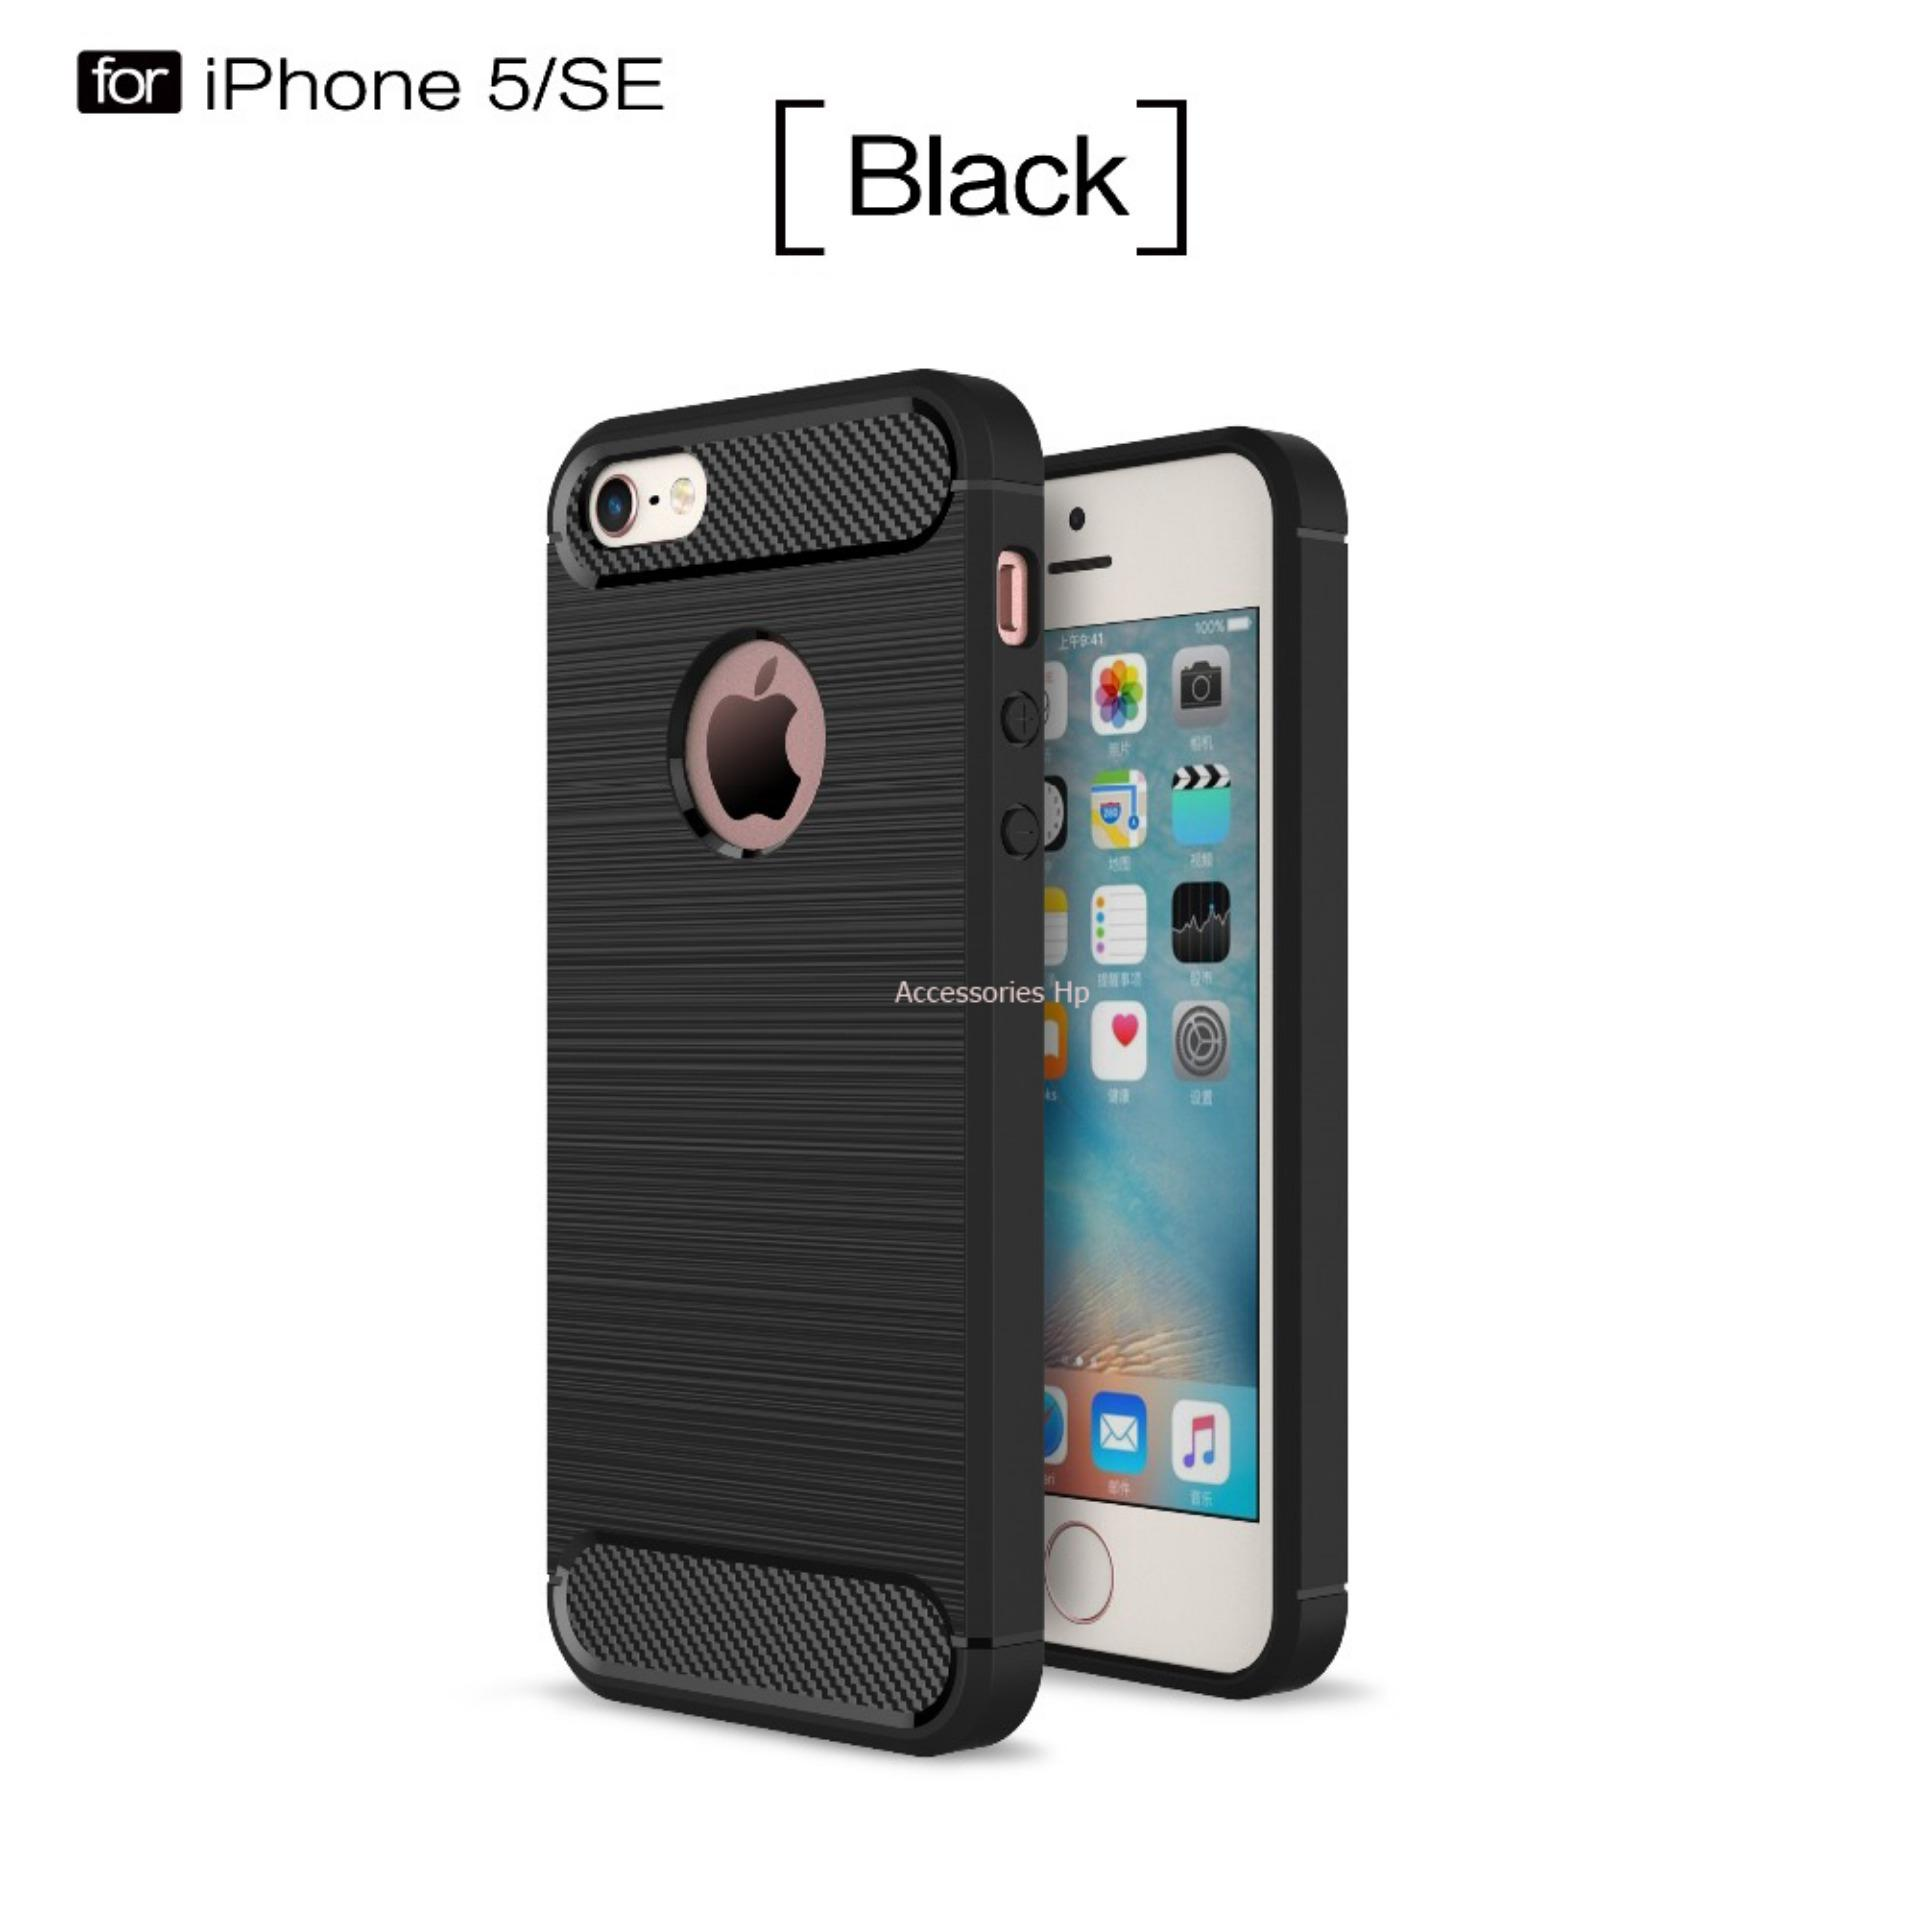 Accessories HP Premium Quality Carbon Shockproof Hybrid Case for iPhone 5 / 5s / SE - Black